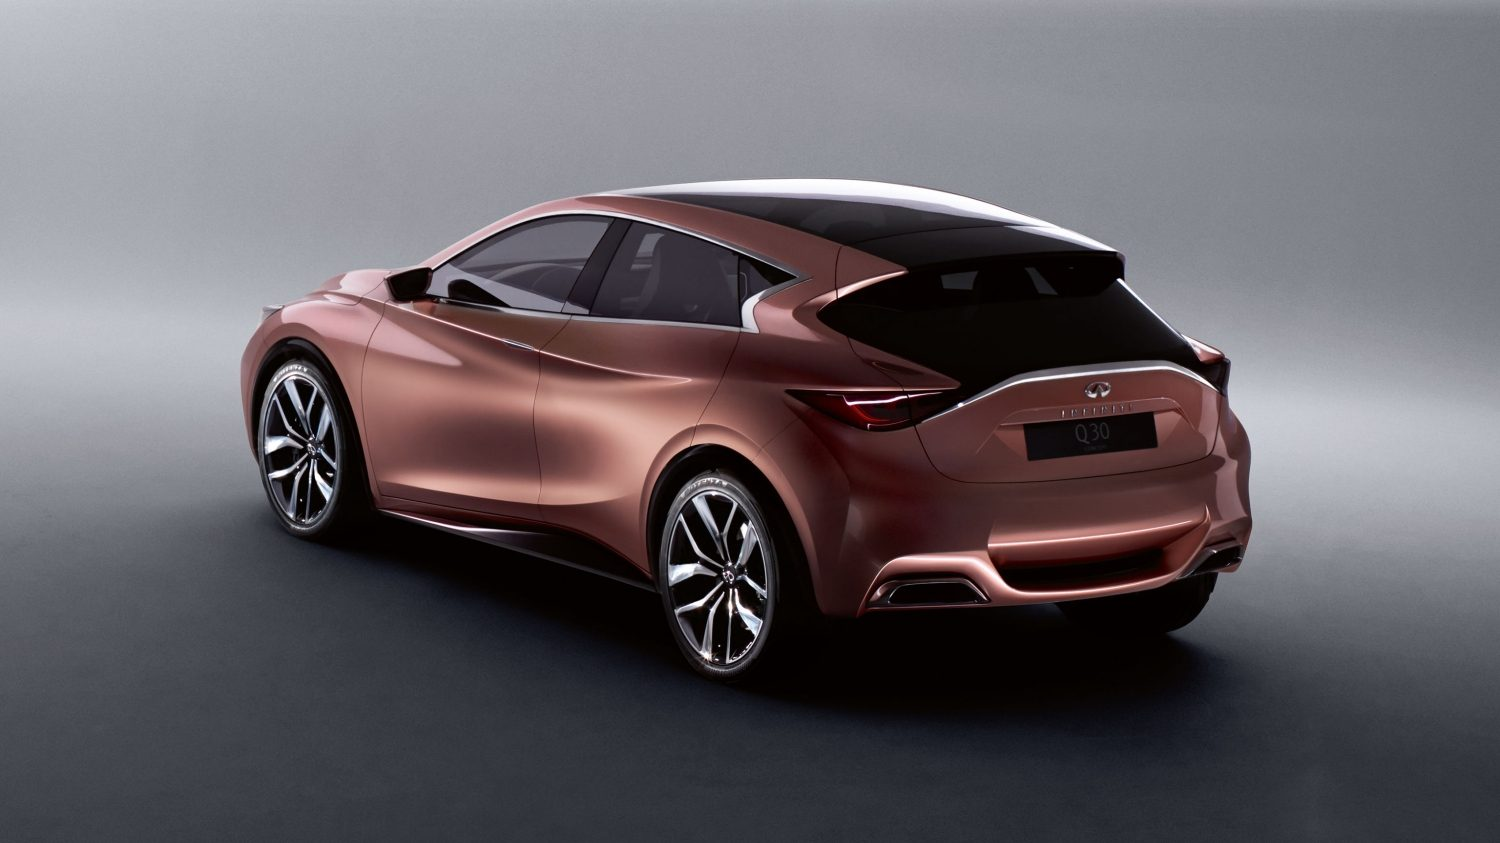 infiniti q30 concept car infiniti concept car. Black Bedroom Furniture Sets. Home Design Ideas